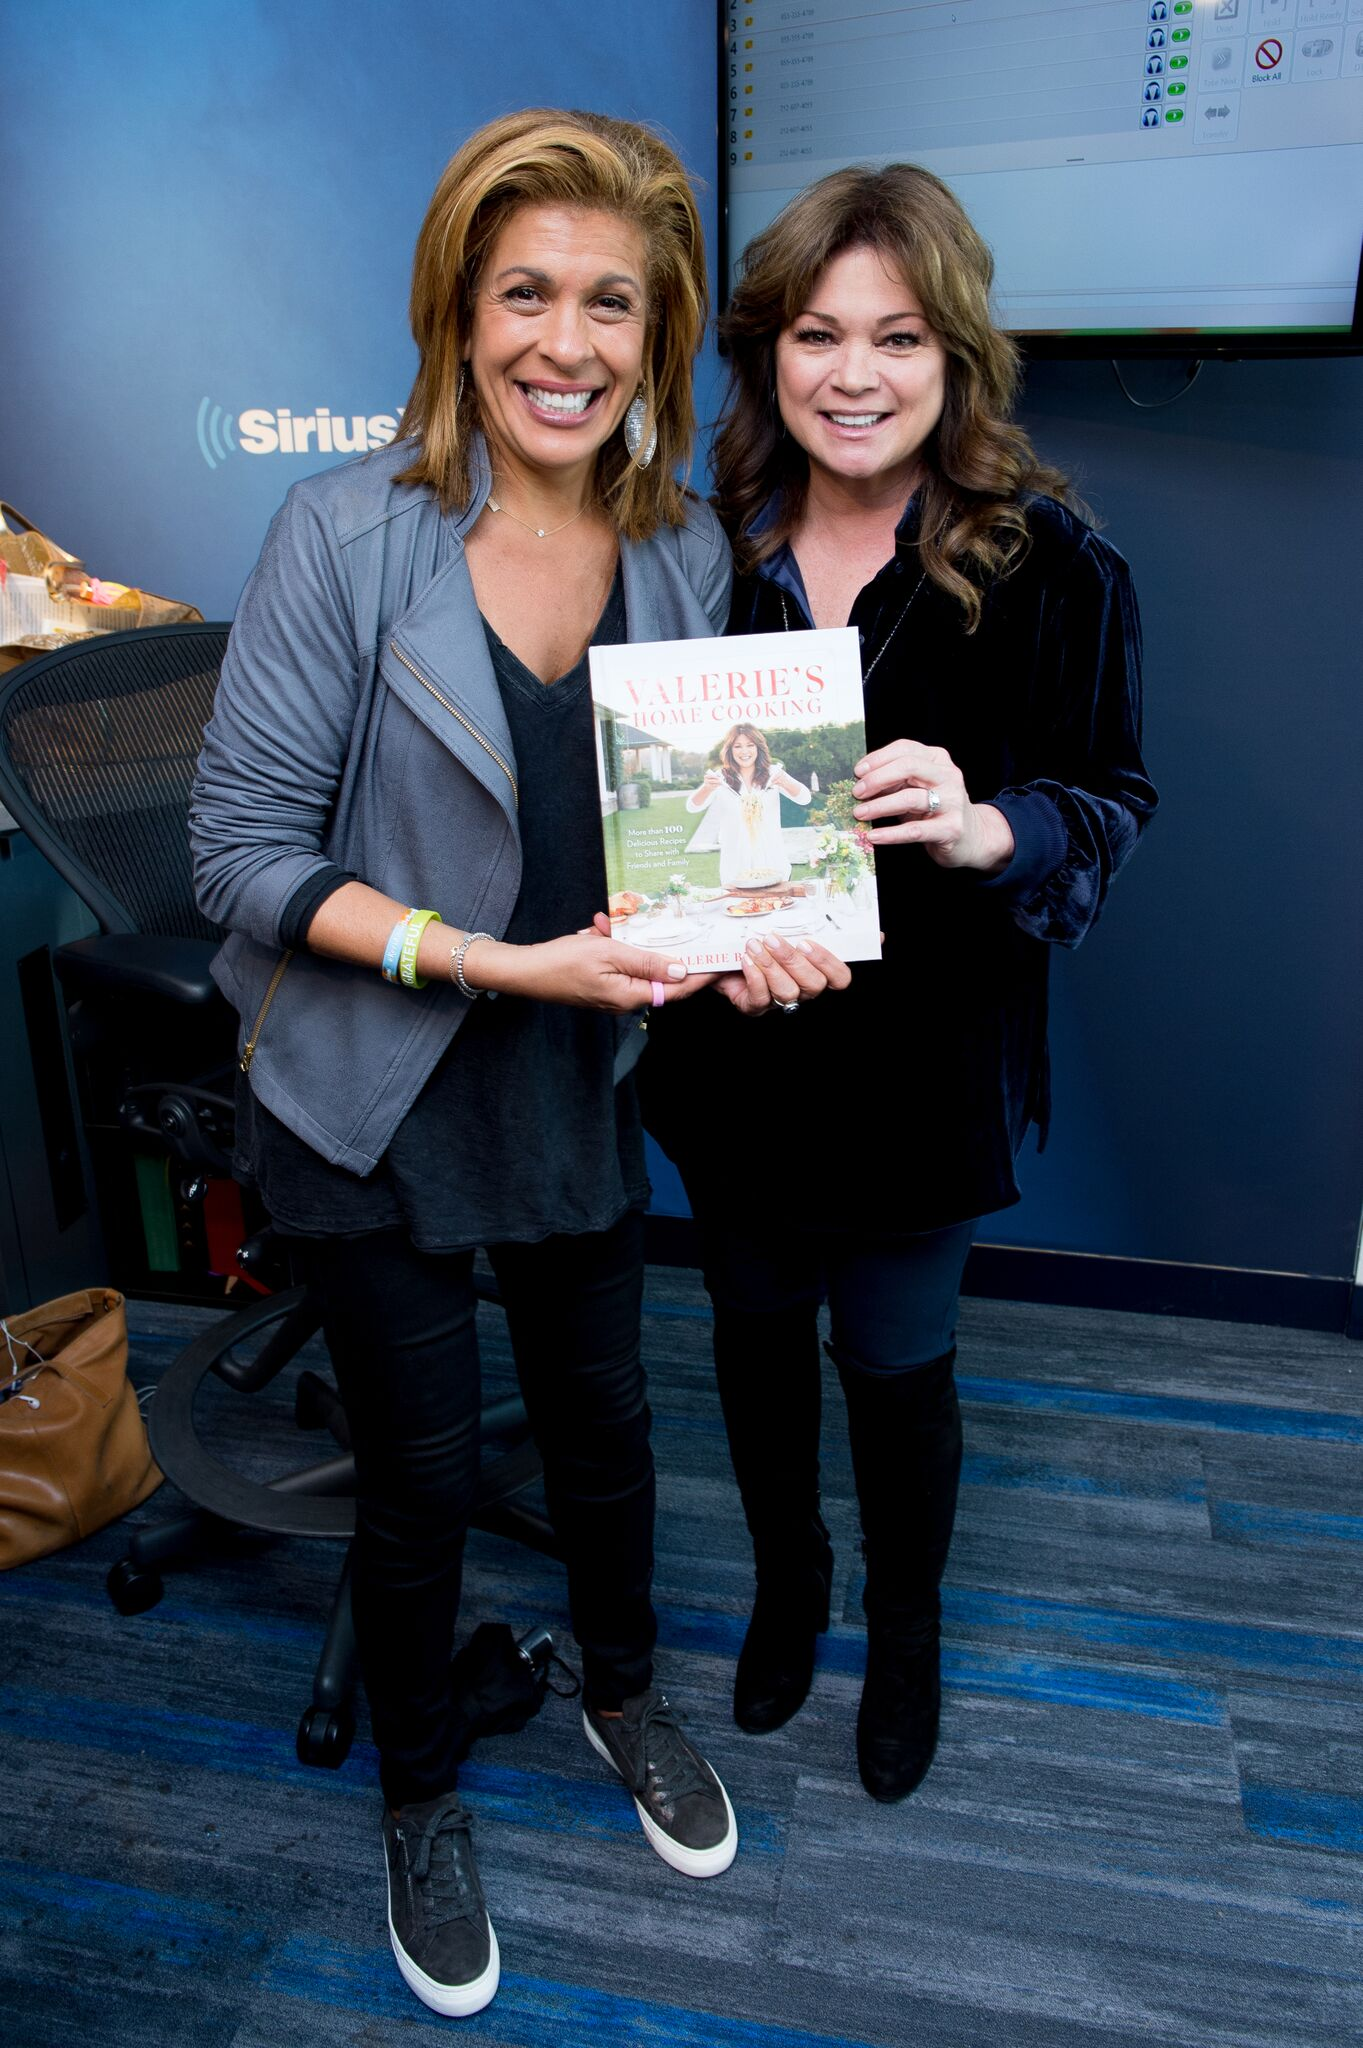 Hoda Kotb with Valerie Bertinelli as she visits Sirius XM | Getty Images